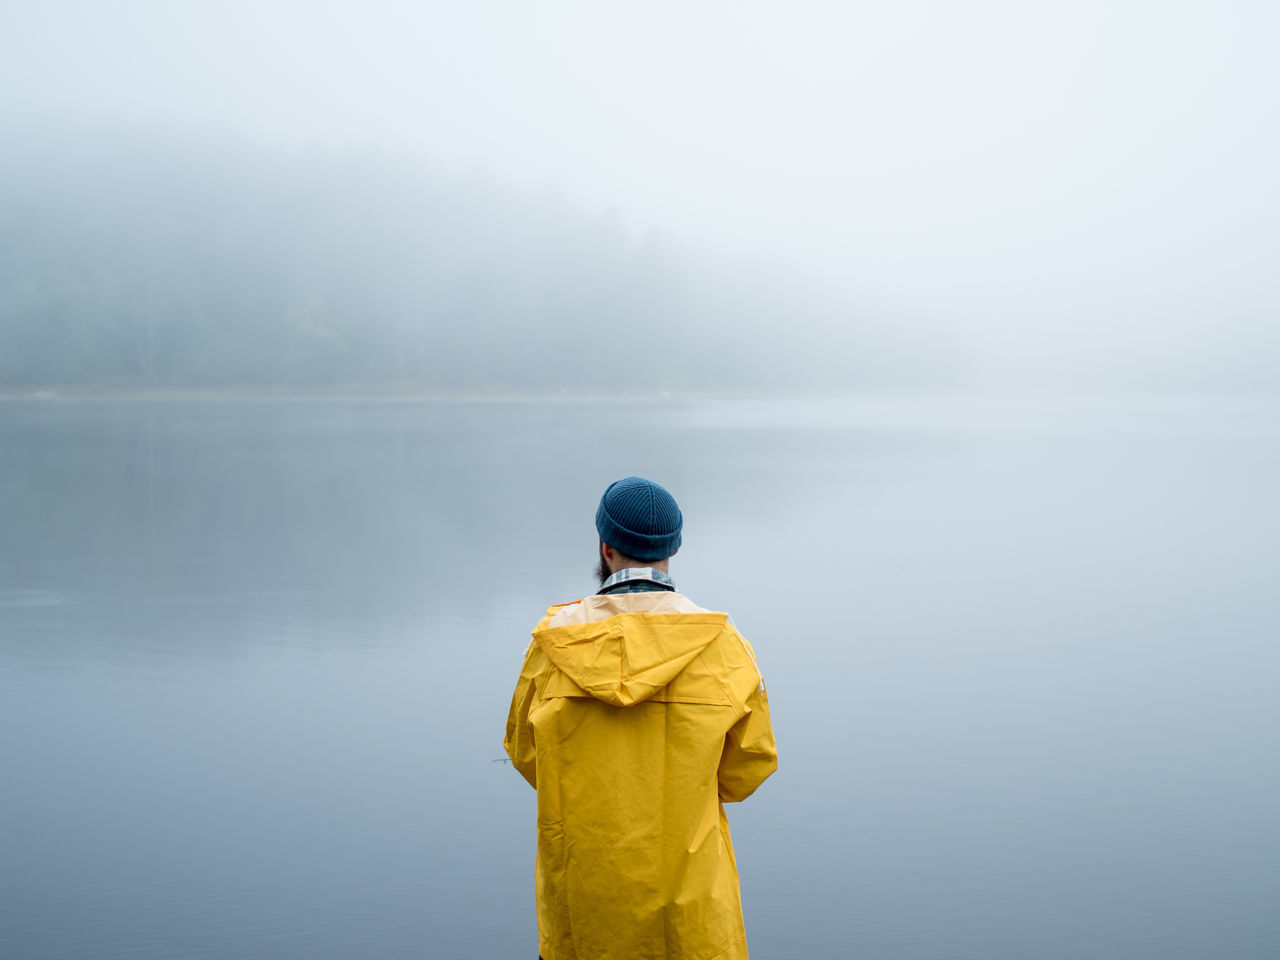 Beauty In Nature Casual Clothing Day Fog Foggy Getting Away From It All In Front Of Lake Leisure Activity Loneliness Men Mountain Nature Non-urban Scene Rear View Remote Scenics Solitude Standing Tourism Tranquil Scene Tranquility Vacations Water Weather Fresh On Market 2016